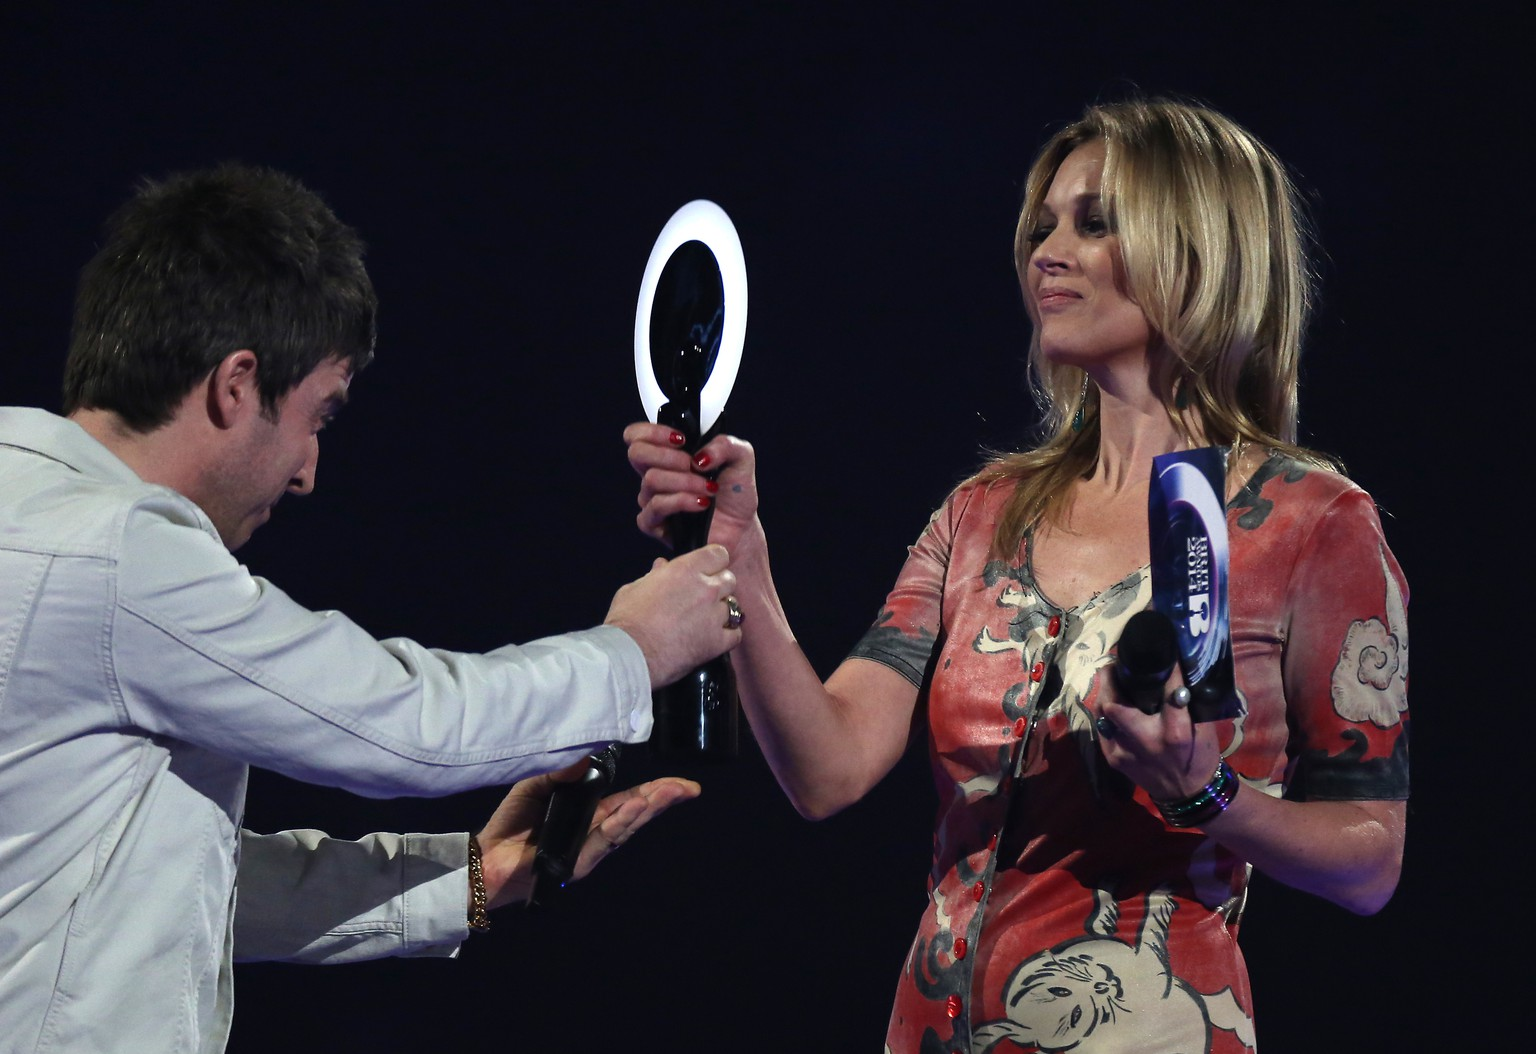 Kate Moss is seen on stage accepting the award for British Male Solo Artist on behalf of winner David Bowie from Noel Gallagher at the BRIT Awards 2014 at the O2 Arena in London on Wednesday, Feb. 19, 2014. (Photo by Joel Ryan/Invision/AP)